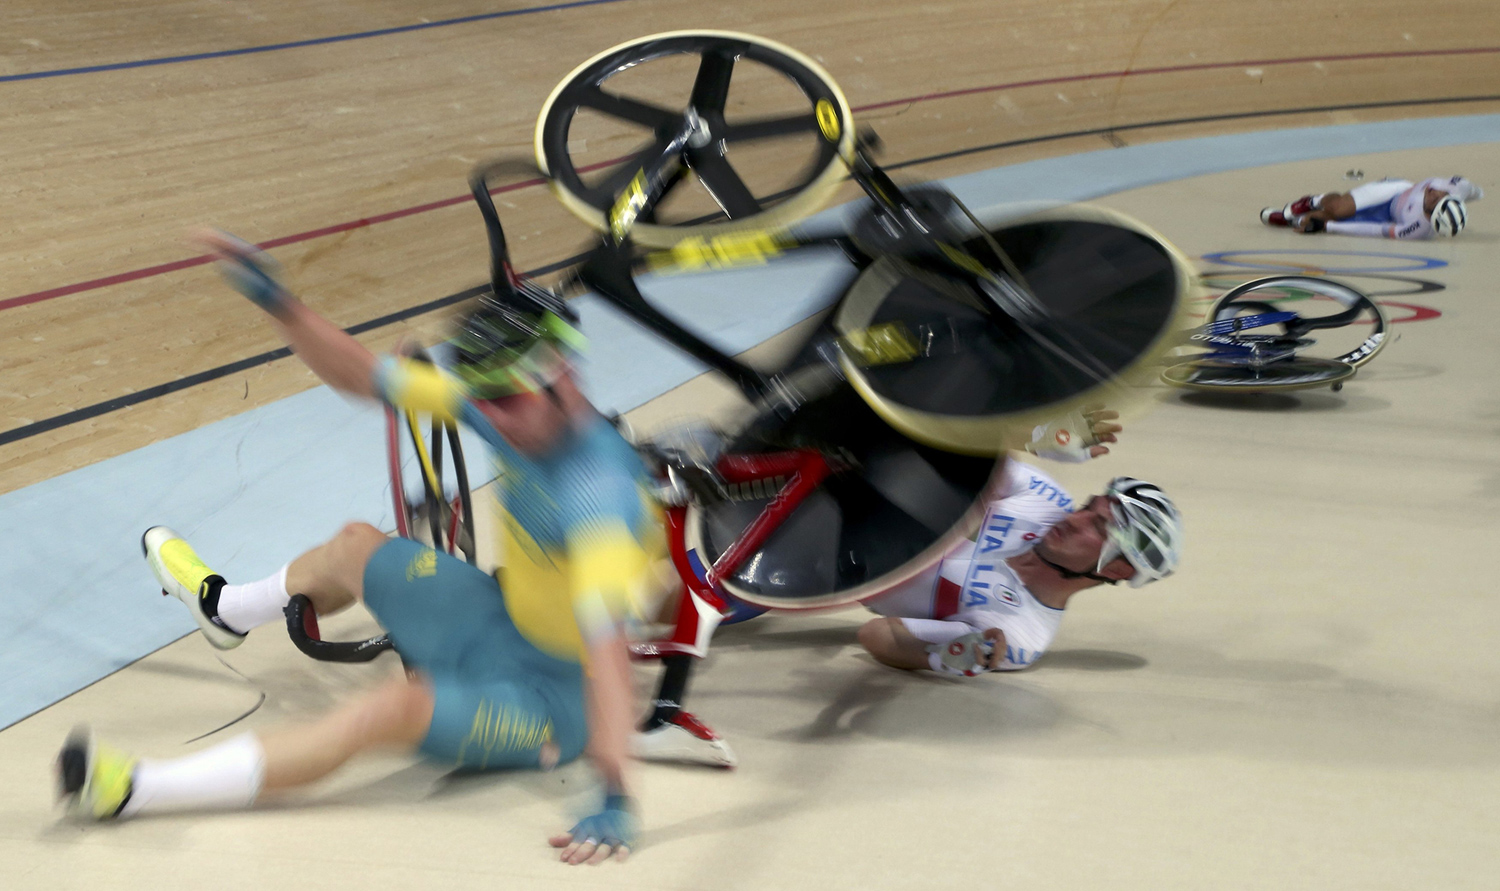 2016 Rio Olympics - Cycling Track - Final - Men's Omnium 40km Points Race - Rio Olympic Velodrome - Rio de Janeiro, Brazil - 15/08/2016. Glenn O'Shea (AUS) of Australia, Elia Viviani (ITA) of Italy and Park Sang-hoon (KOR) of South Korea crash. REUTERS/Eric Gaillard FOR EDITORIAL USE ONLY. NOT FOR SALE FOR  MARKETING OR ADVERTISING CAMPAIGNS. - RTX2L244